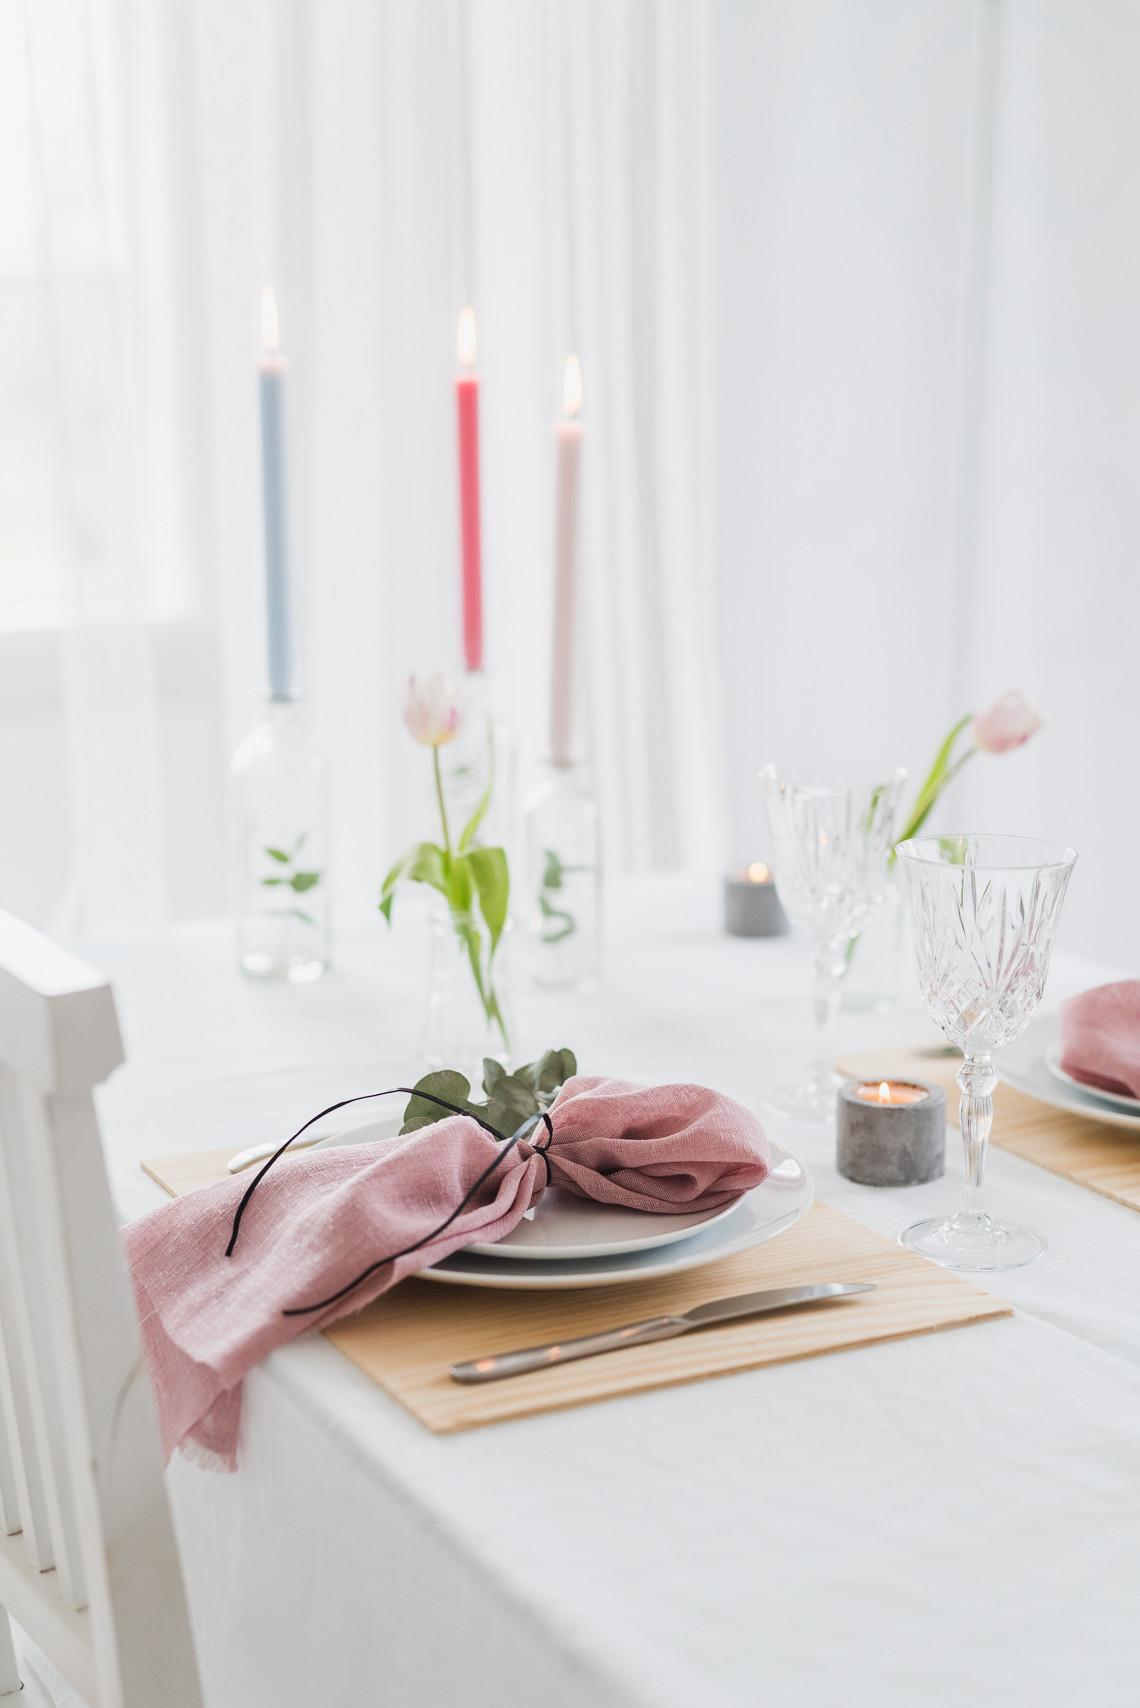 Chic Scandinavian Style Dinner Party Table Styling